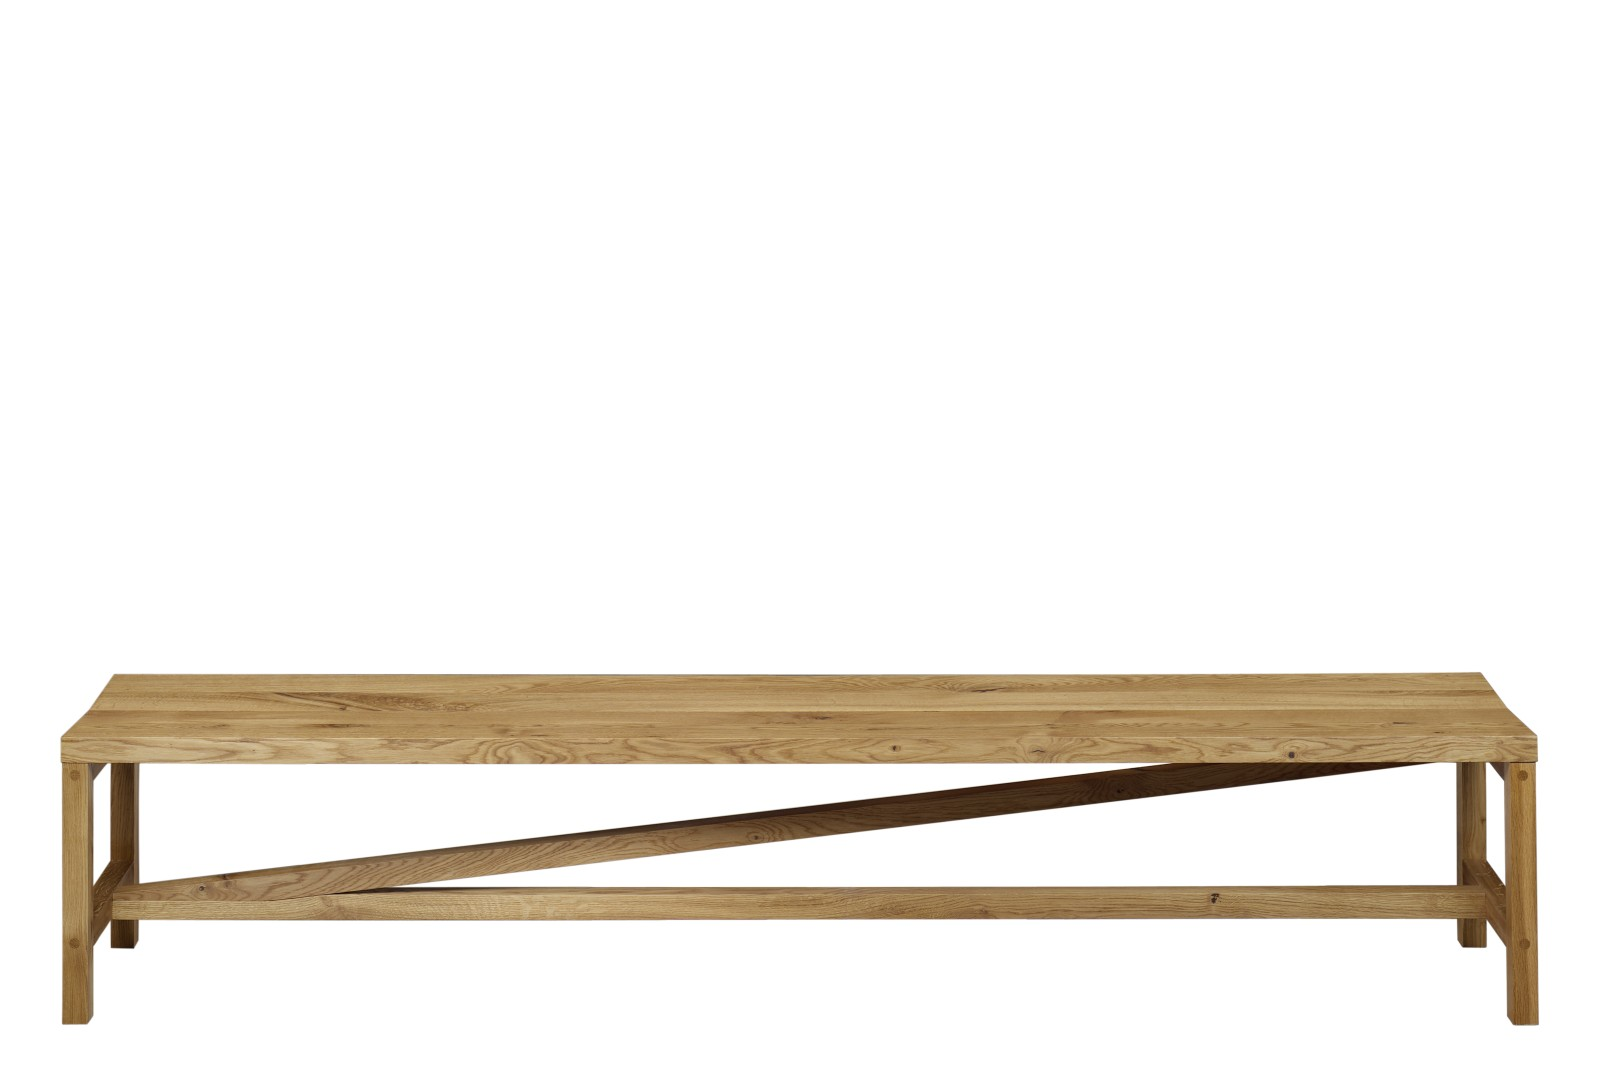 BE05 Sitz Bench 250 cm